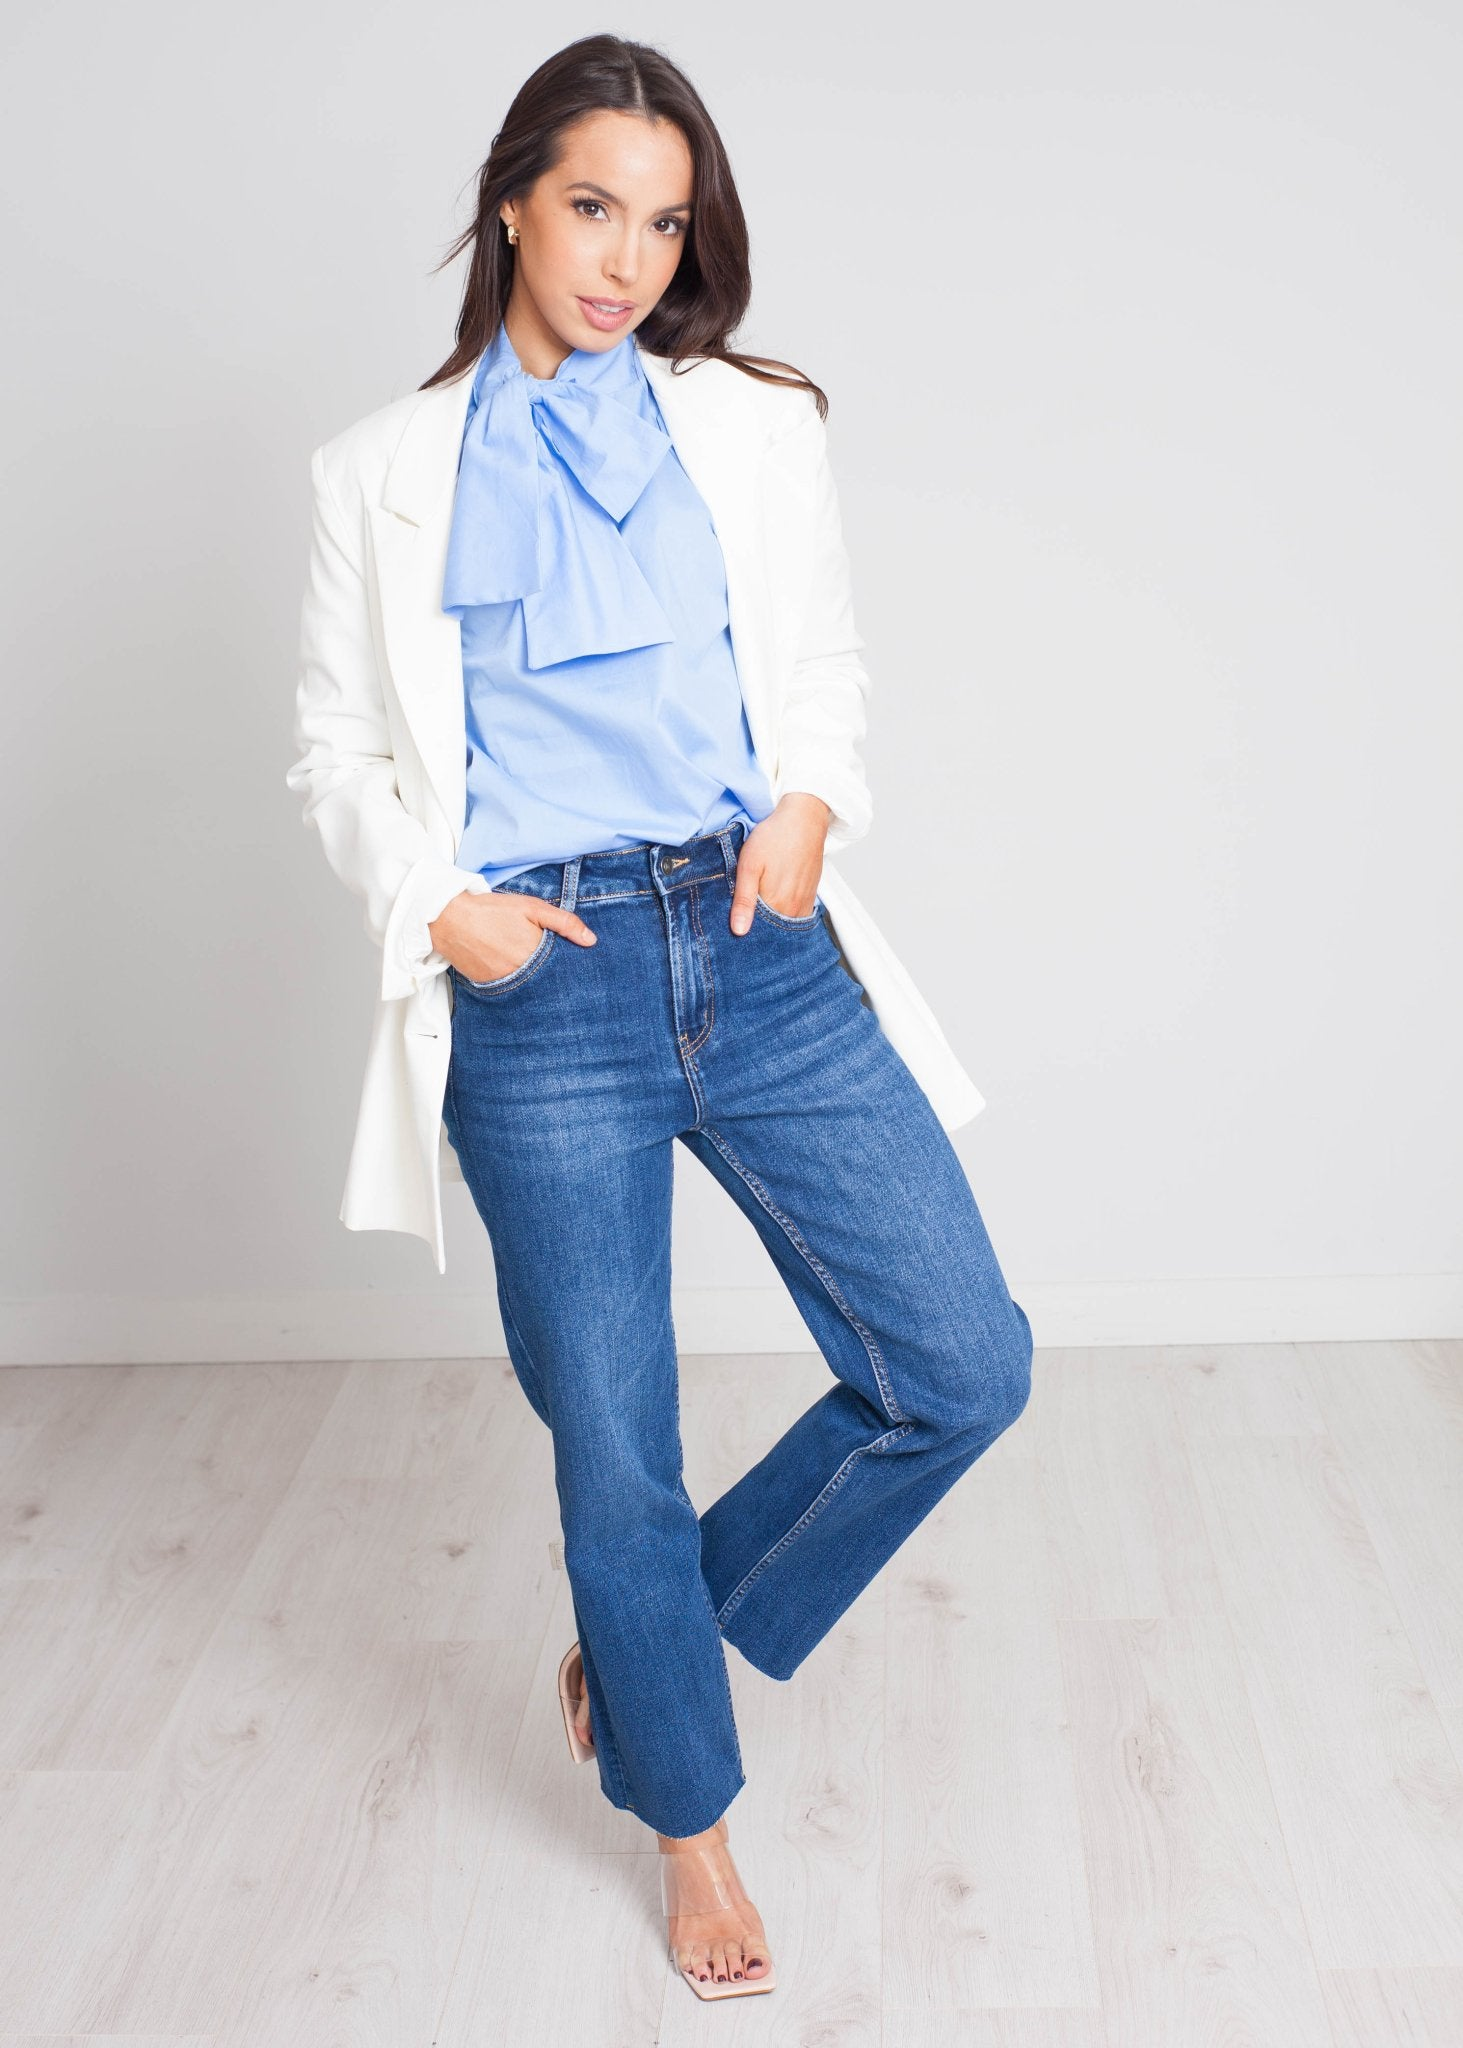 Heidi Bow Blouse In Blue - The Walk in Wardrobe